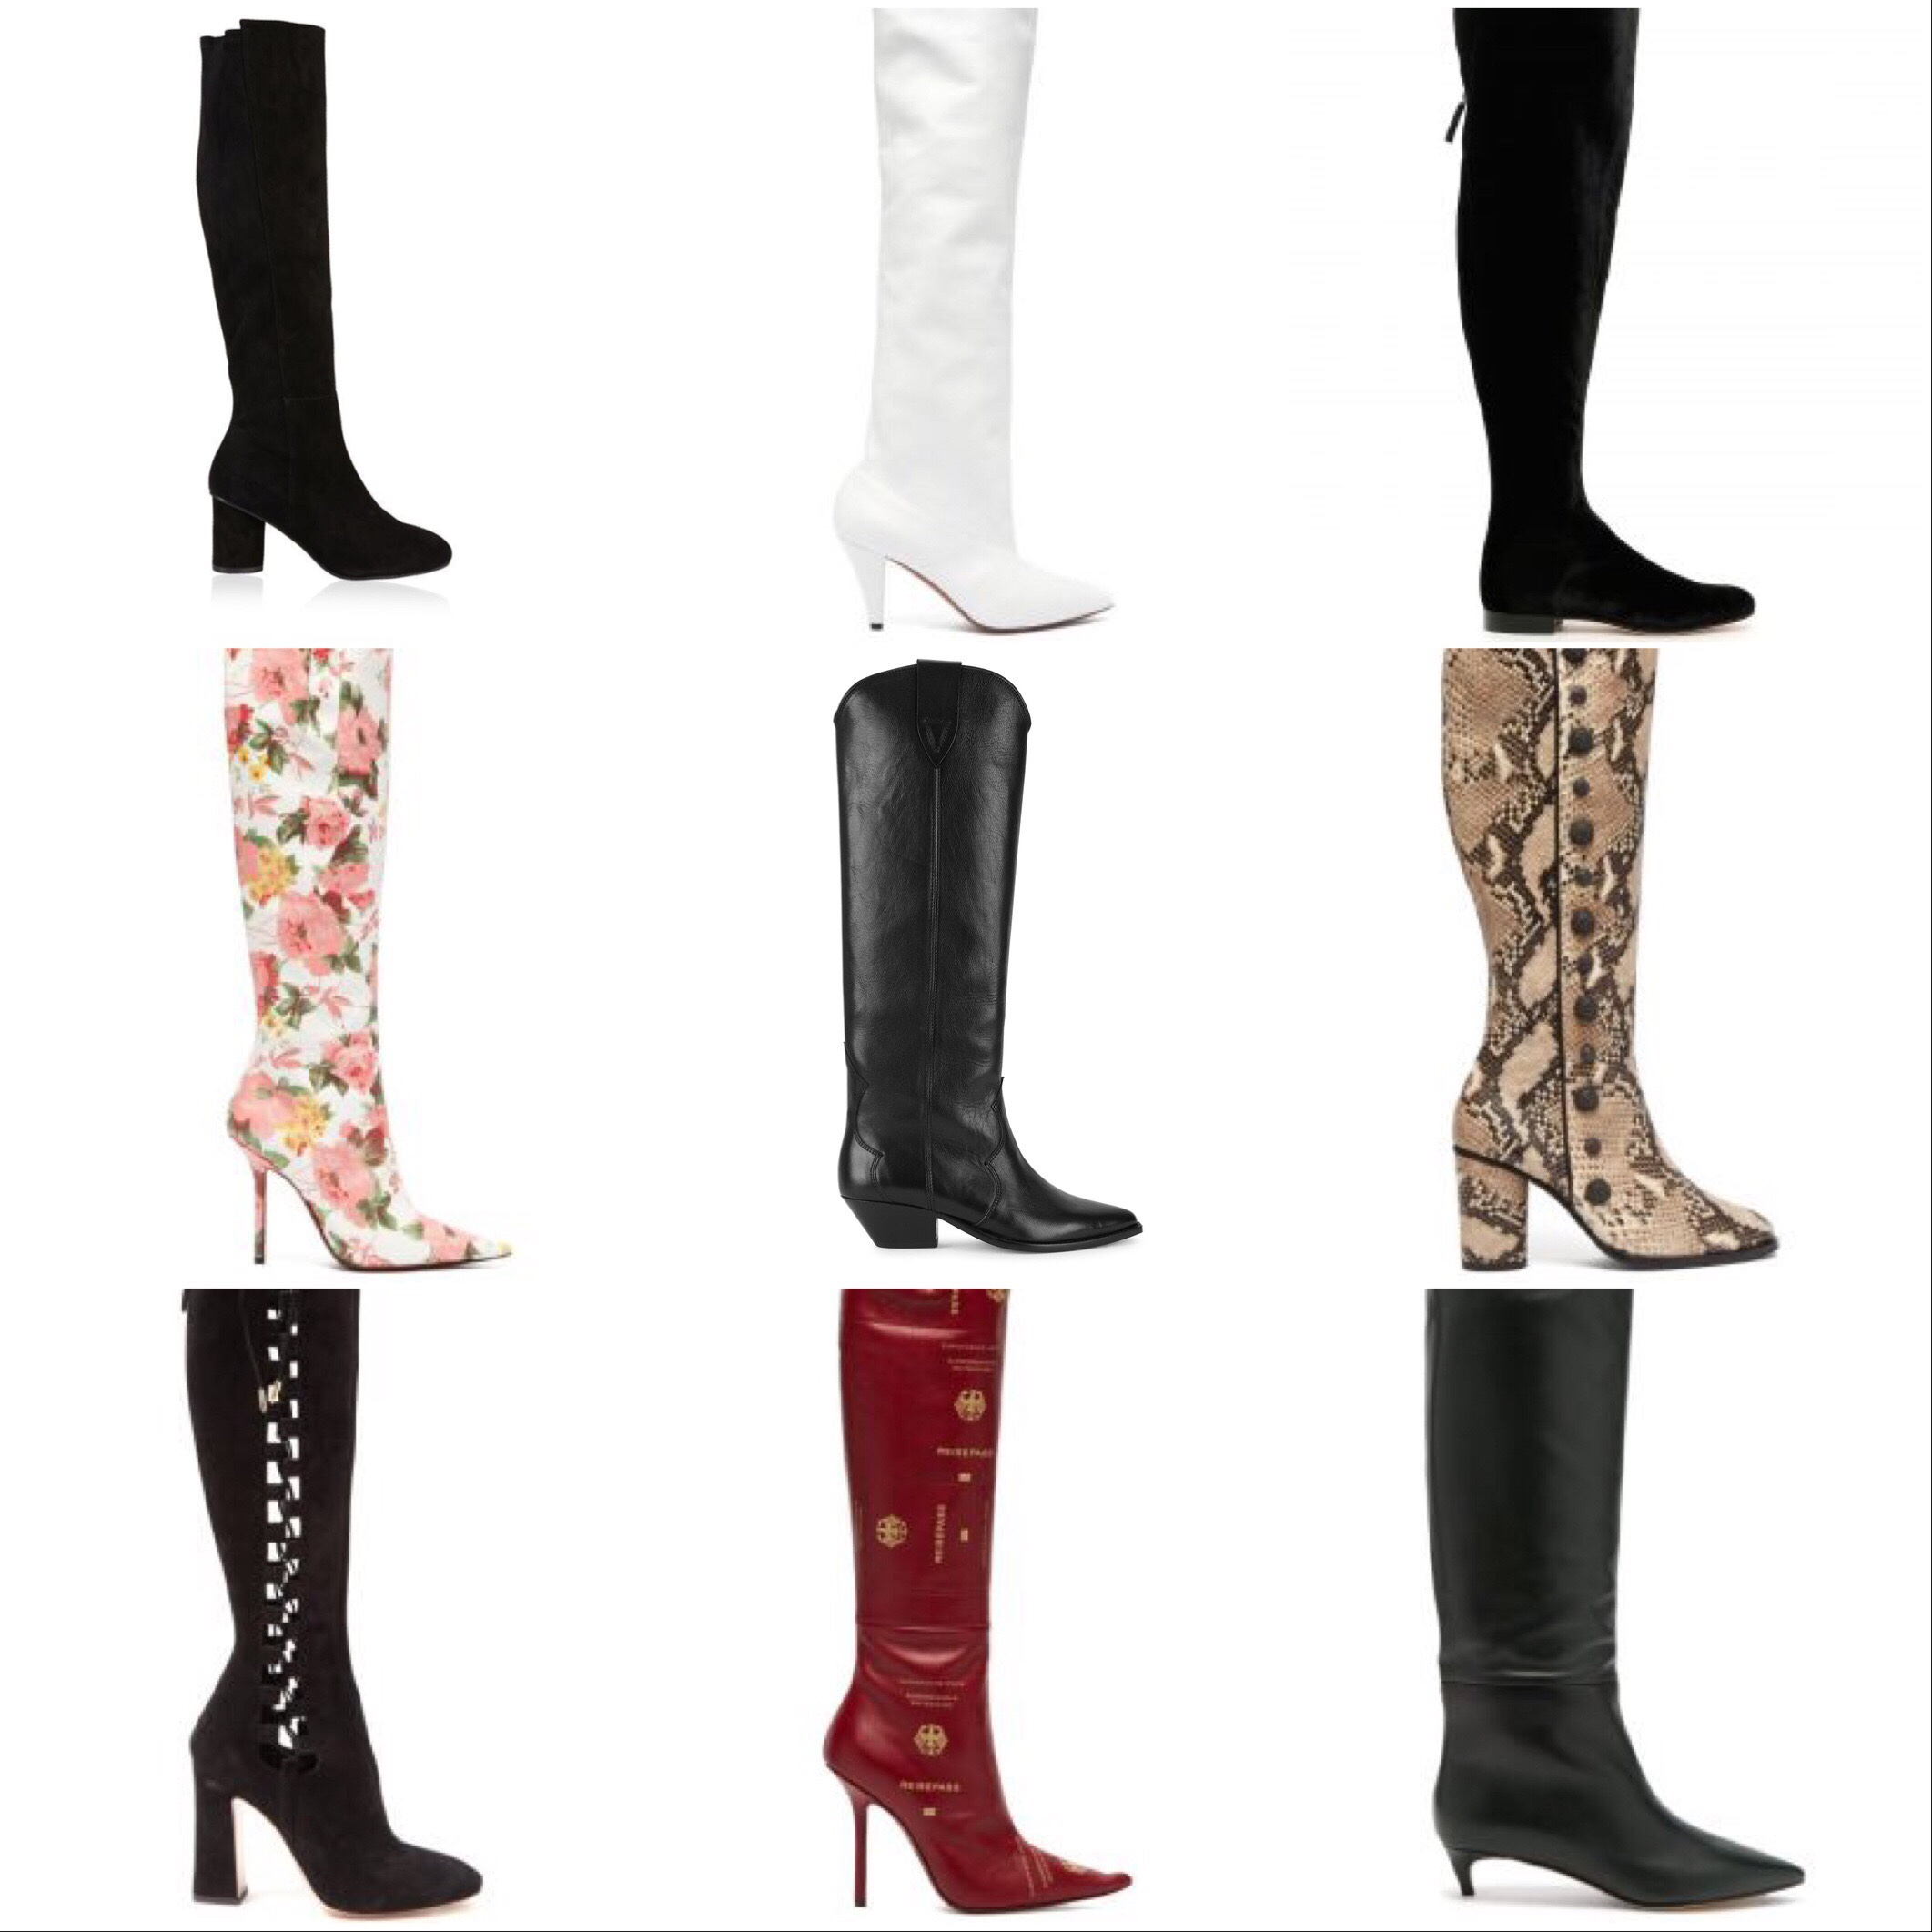 Luxury Knee-High Boot Guide